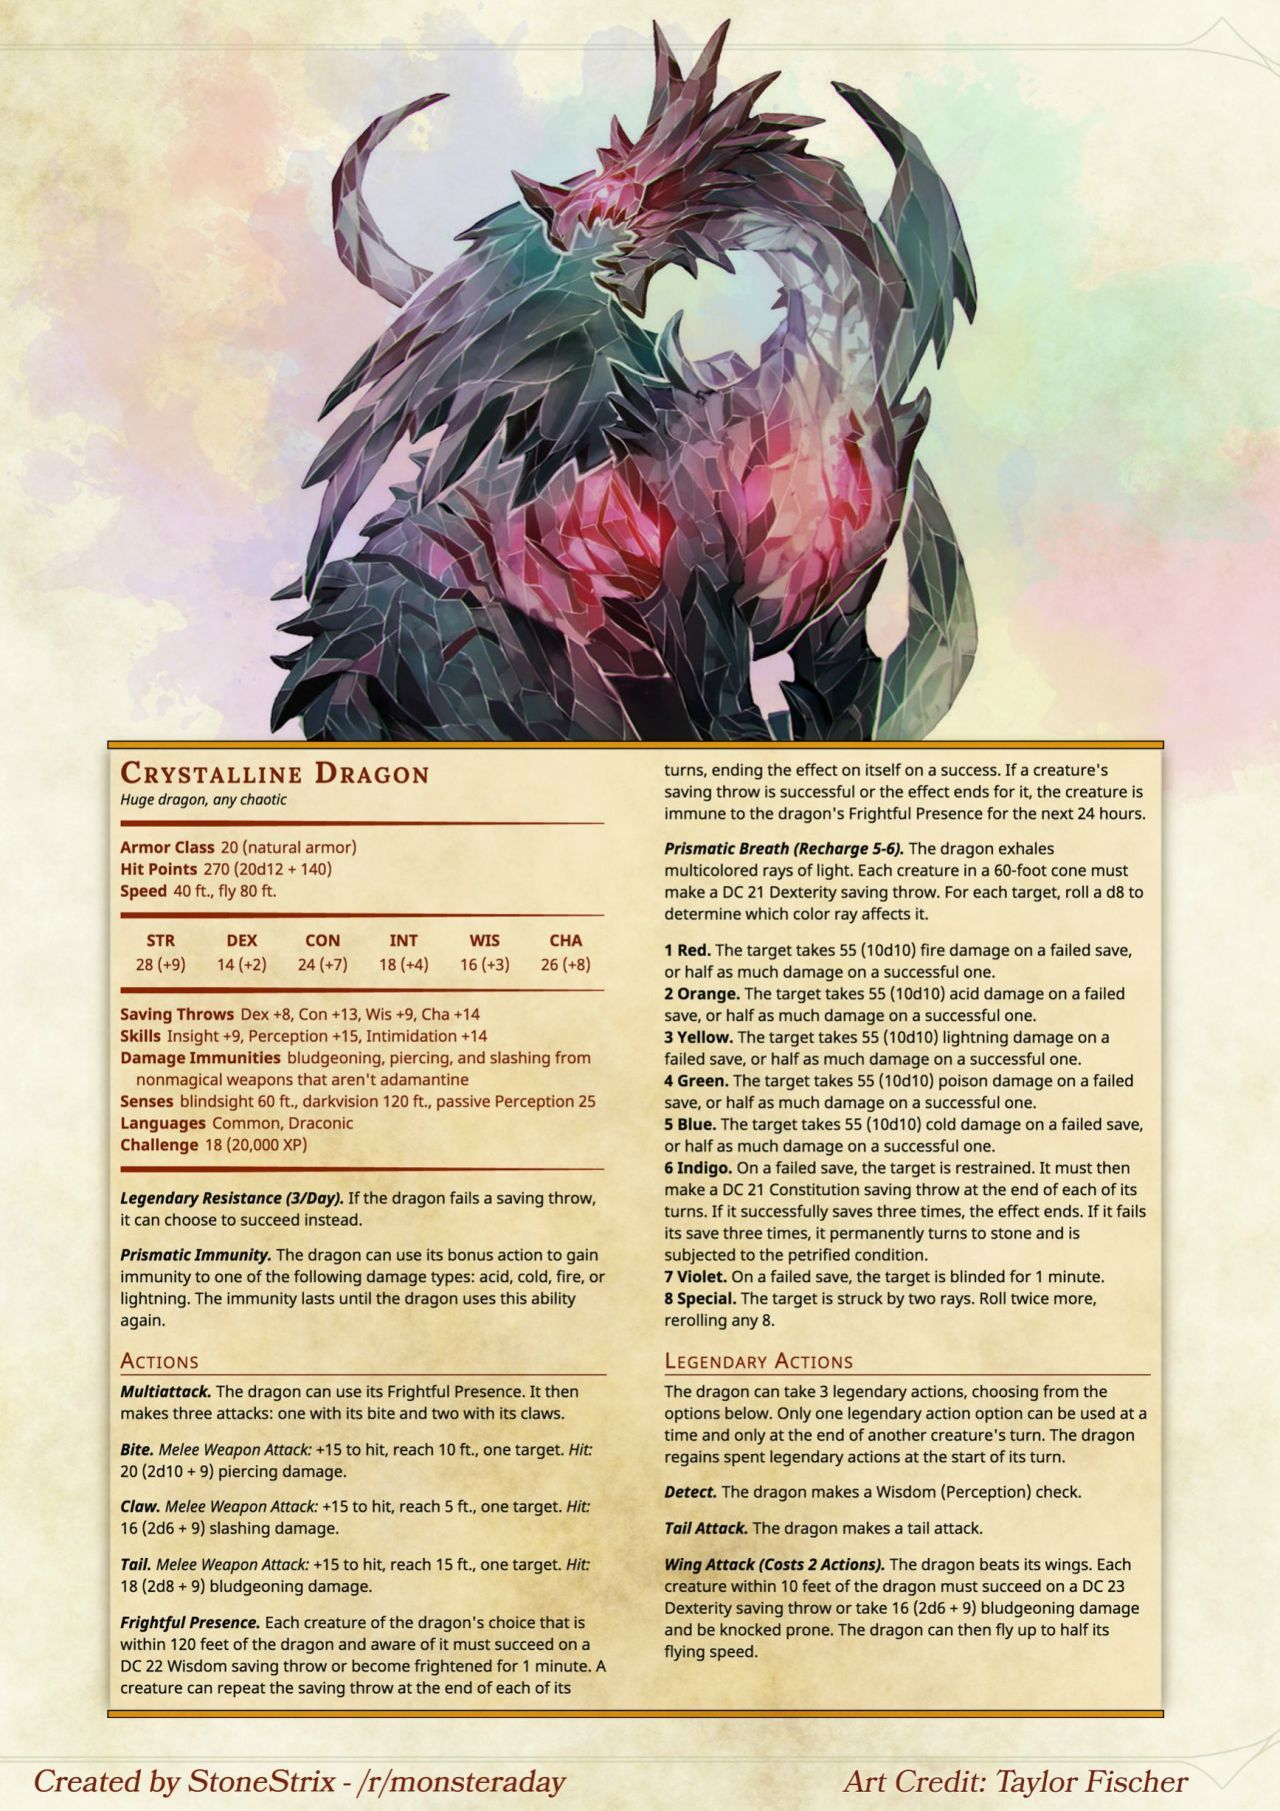 DnD 5e Homebrew — Monsters by Stonestrix | dungeons and dragons